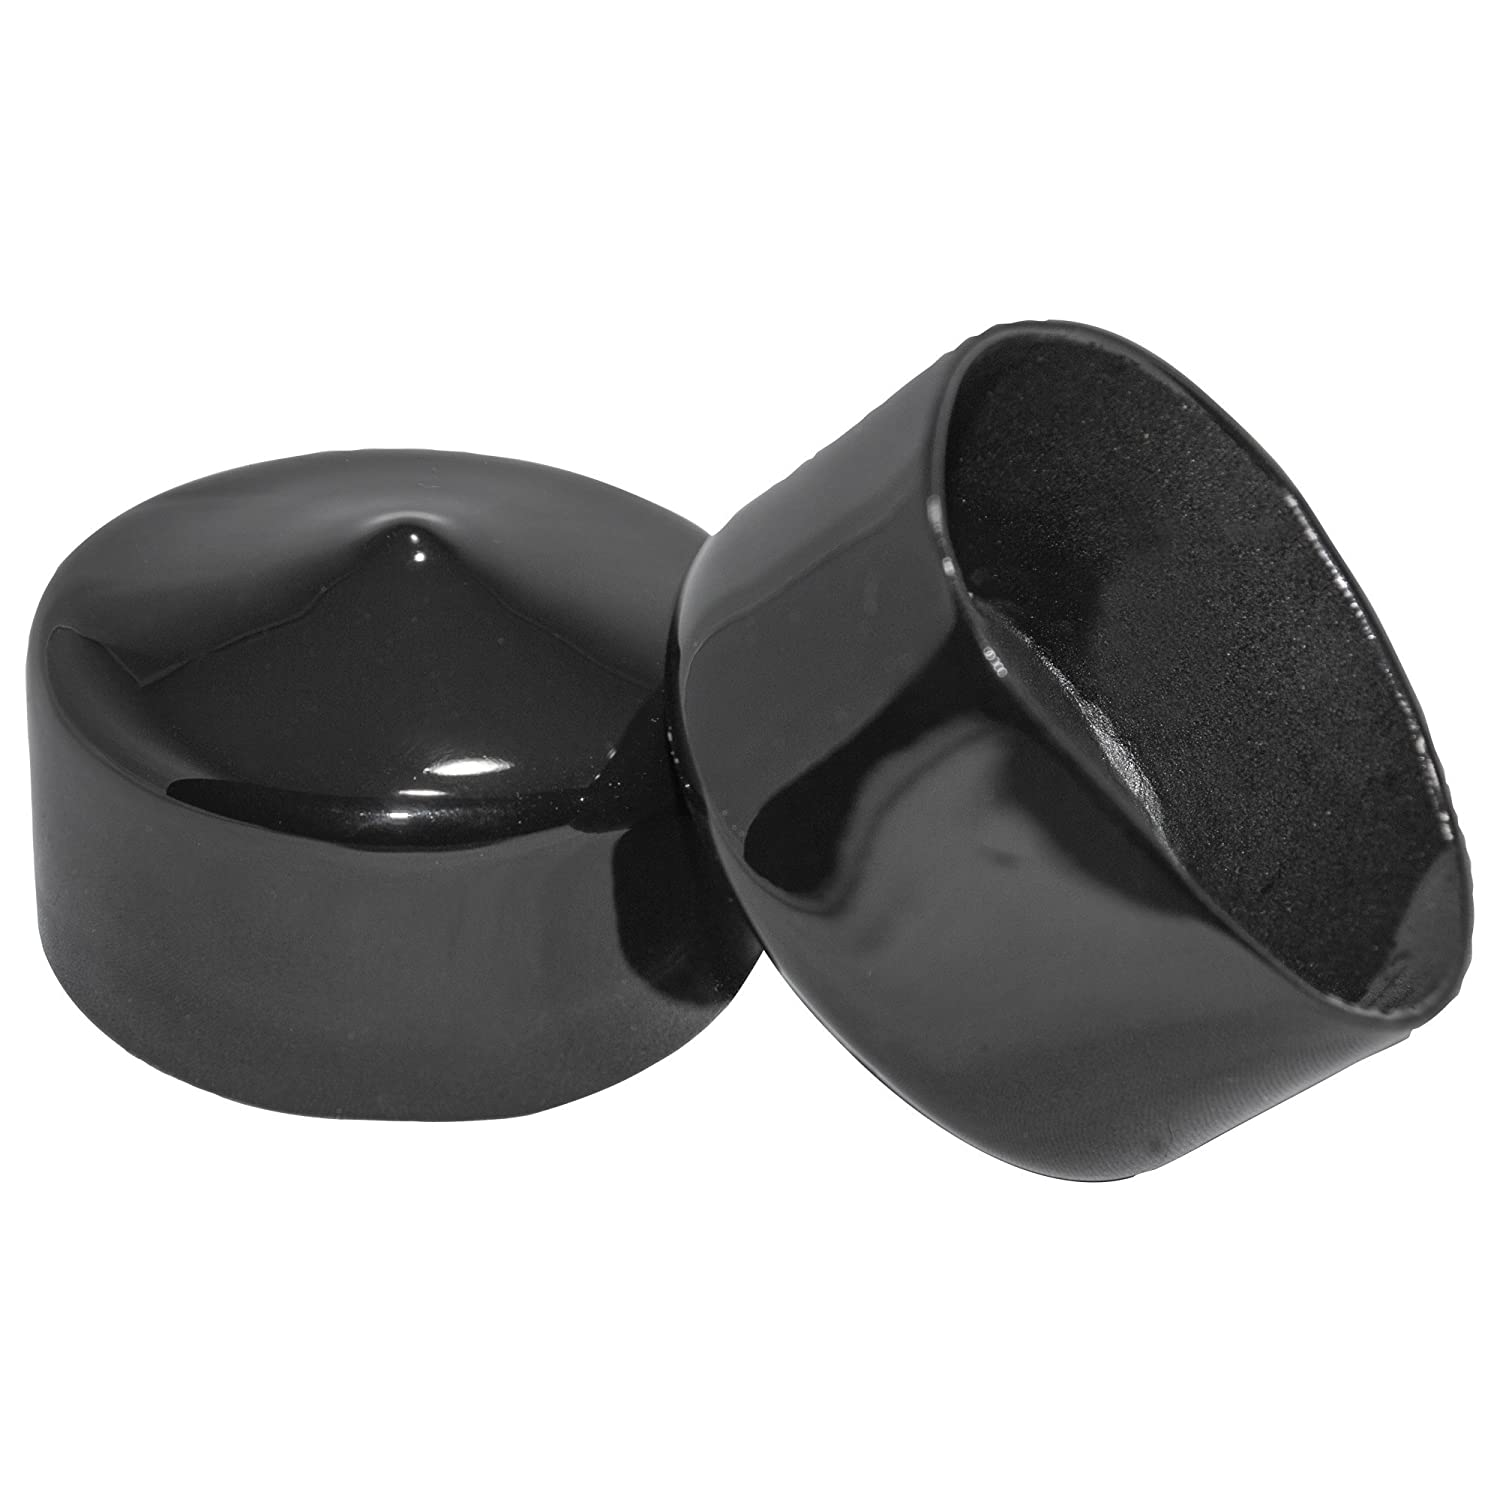 Prescott Plastics 2 Inch Round Black Vinyl End Cap, Flexible Pipe Post Rubber Cover (8)